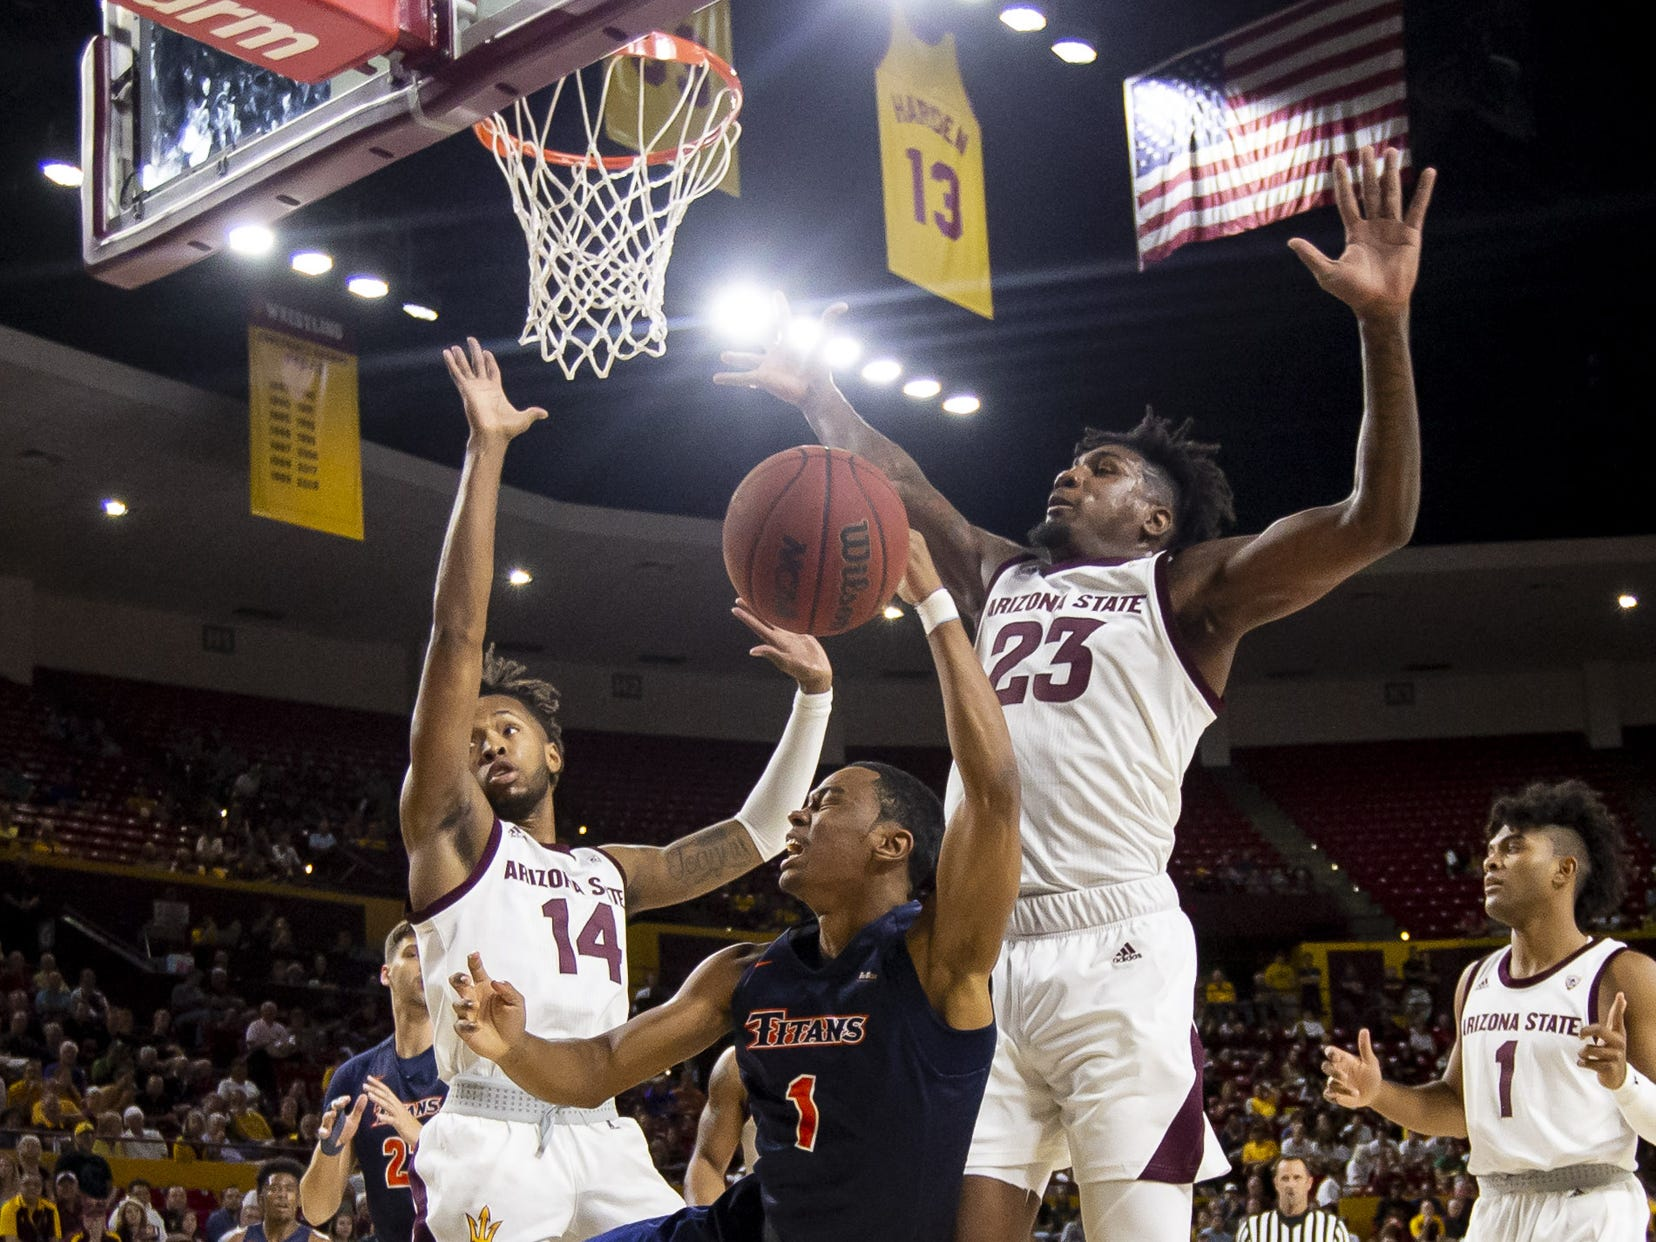 Guard Jamal Smith (1) of the Cal State Fullerton Titans shoots against forward Kimani Lawrence (14) and forward Romello White (23) of the Arizona State Sun Devils at Wells Fargo Arena on Tuesday, November 6, 2018 in Tempe, Arizona.